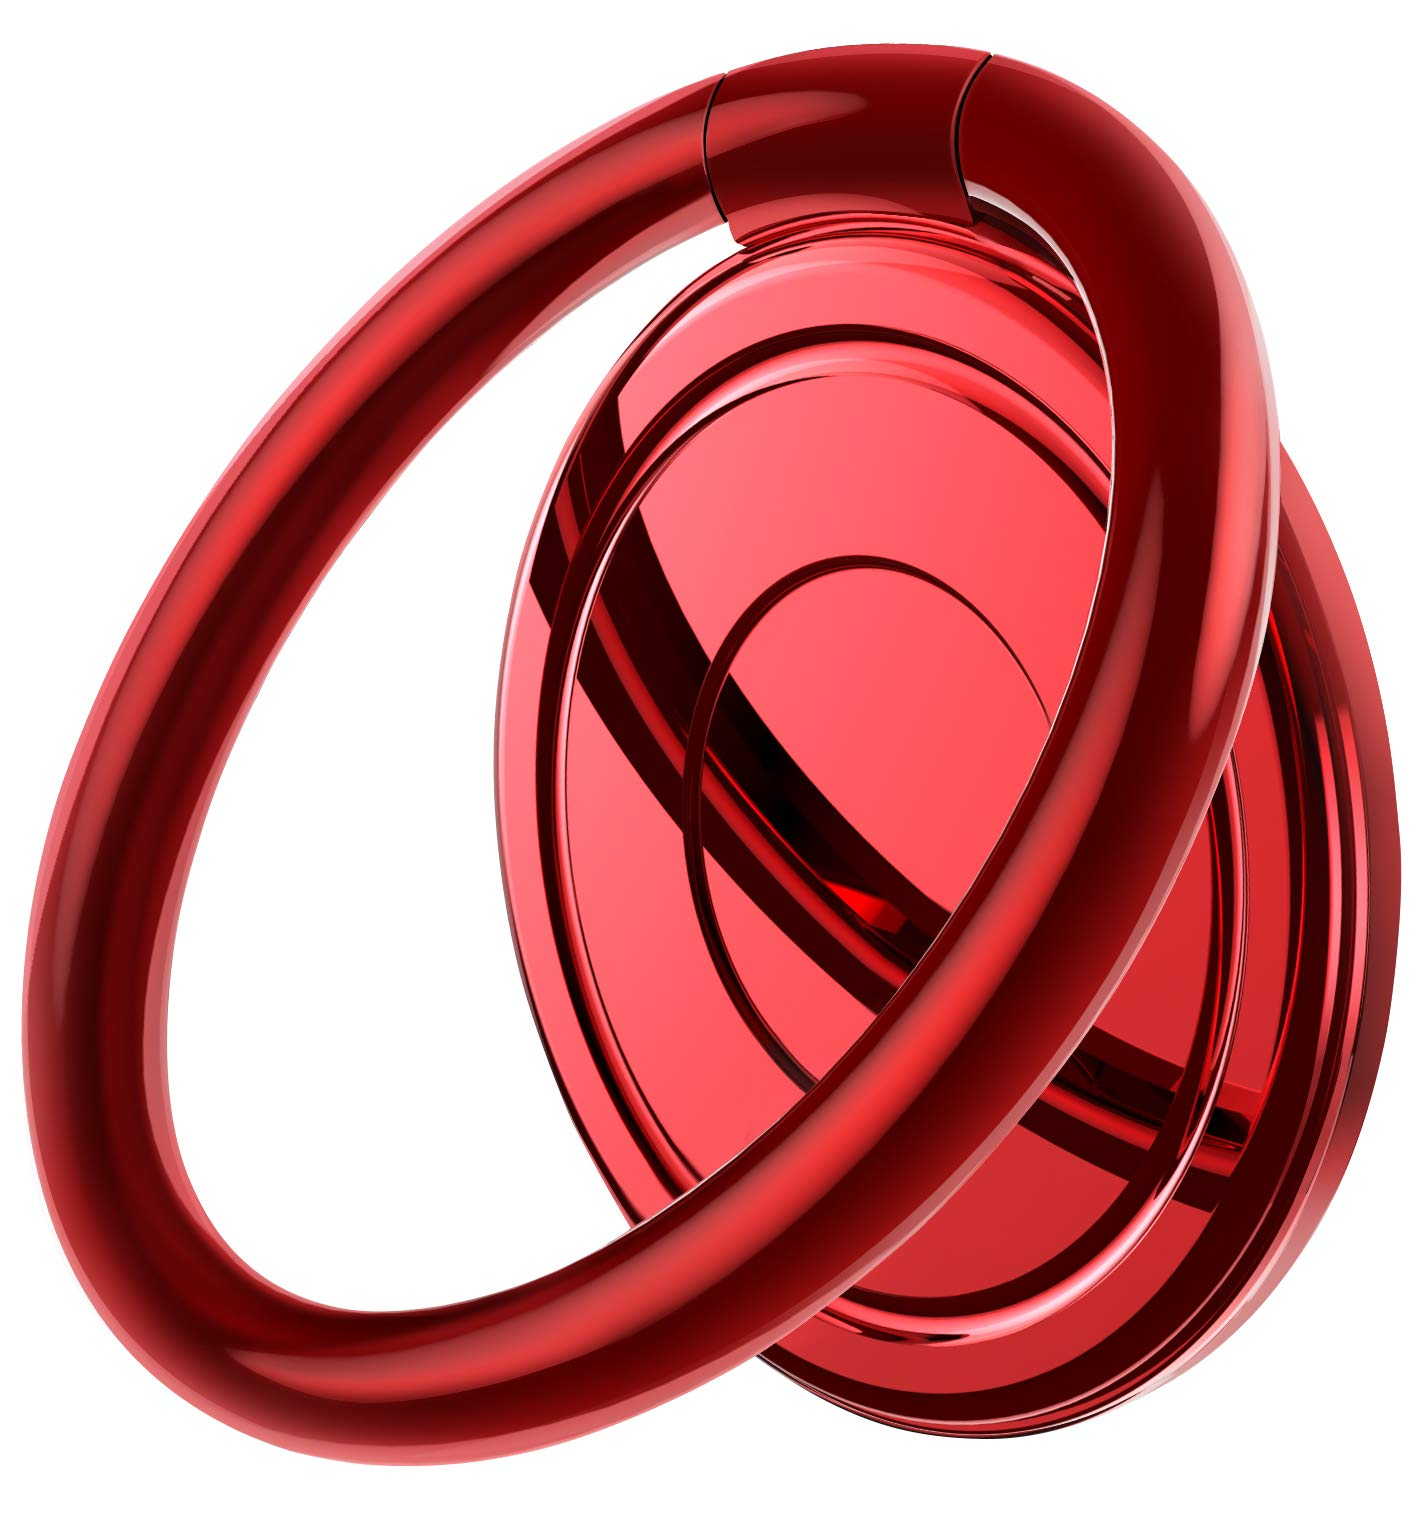 RANVOO Phone Ring Holder, Cell Phone Finger Kickstand, Adjustable and Rotatable Stand Compatible with All Smartphone for iPhone SE/ 11 Pro Max/11 Pro/11/7/8/7 Plus/8Plus/Xs/XR/Note 10 S10 LG, Red